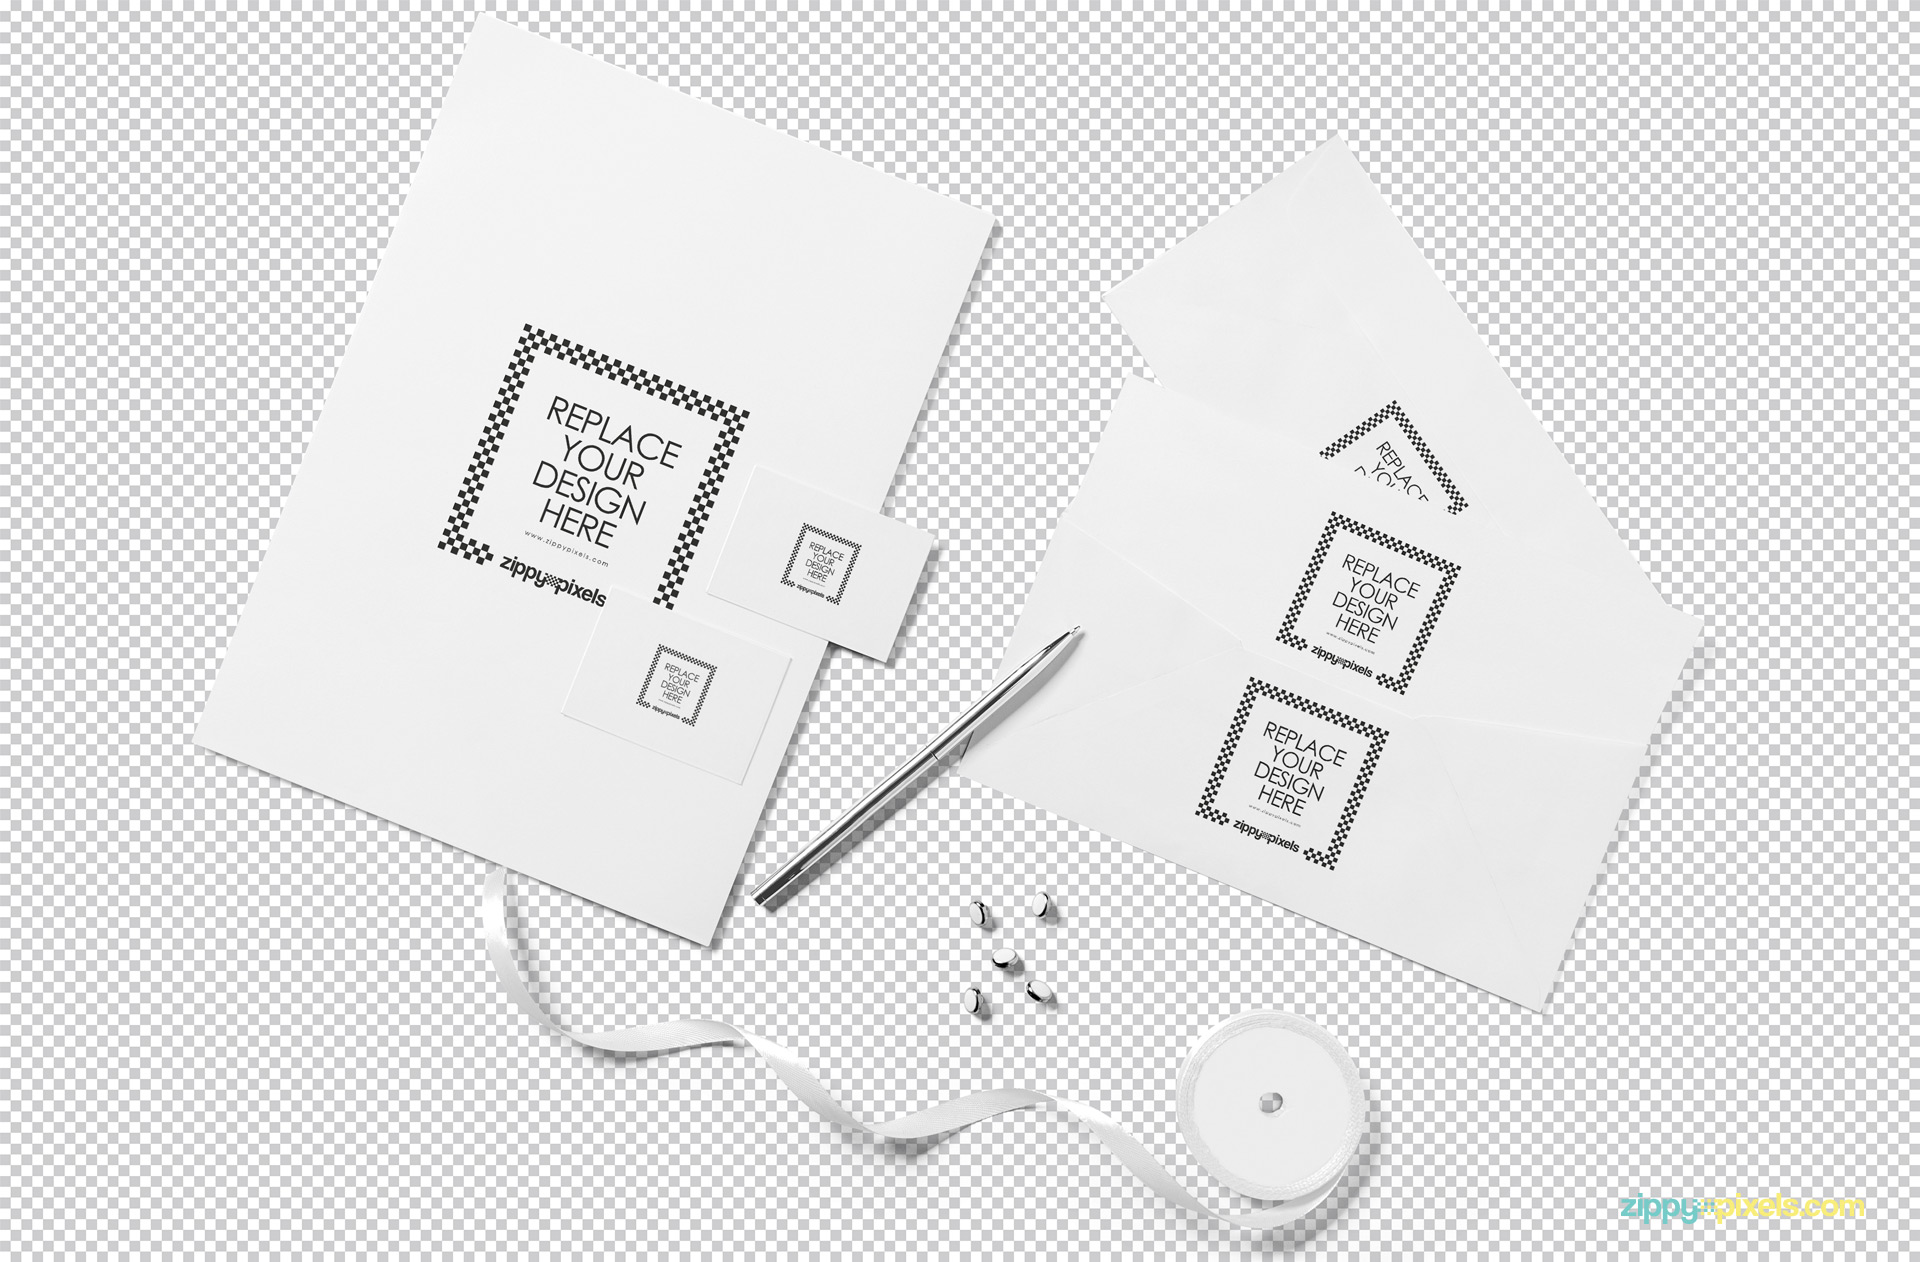 Photoshop to customize this free stationery mockup scene.